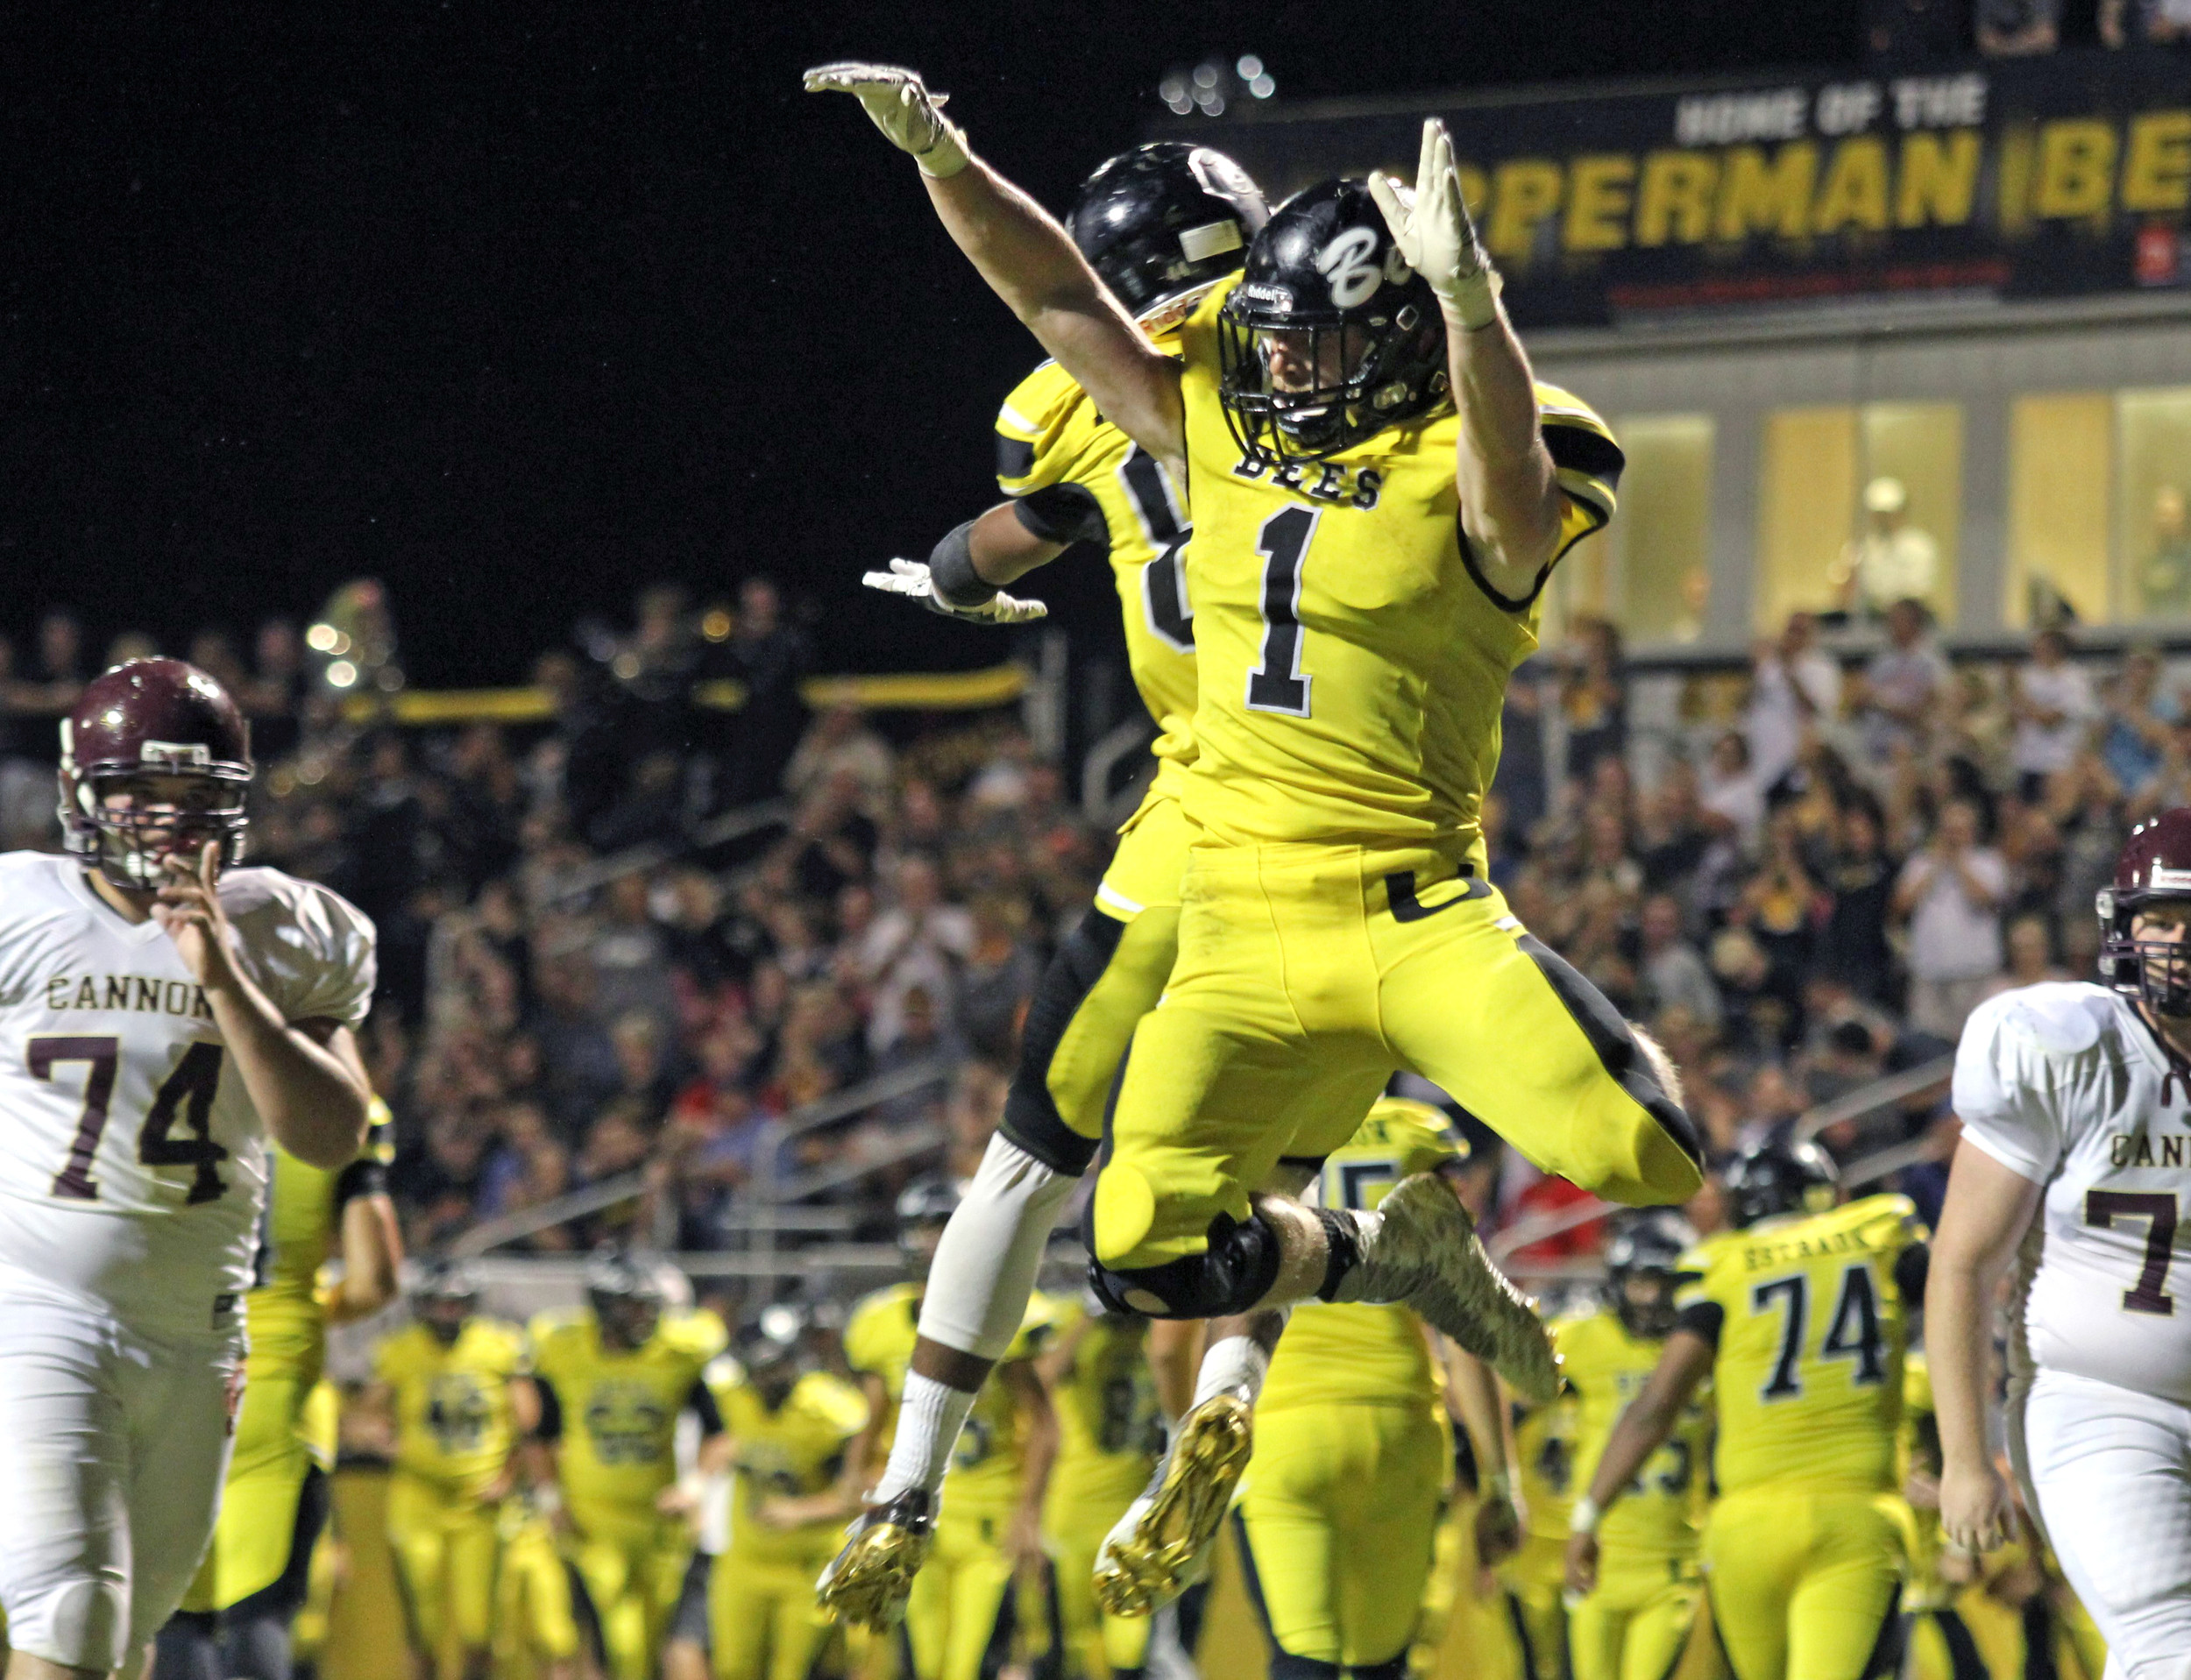 ... Bees hope to celebrate again on Friday when Upperman hosts York